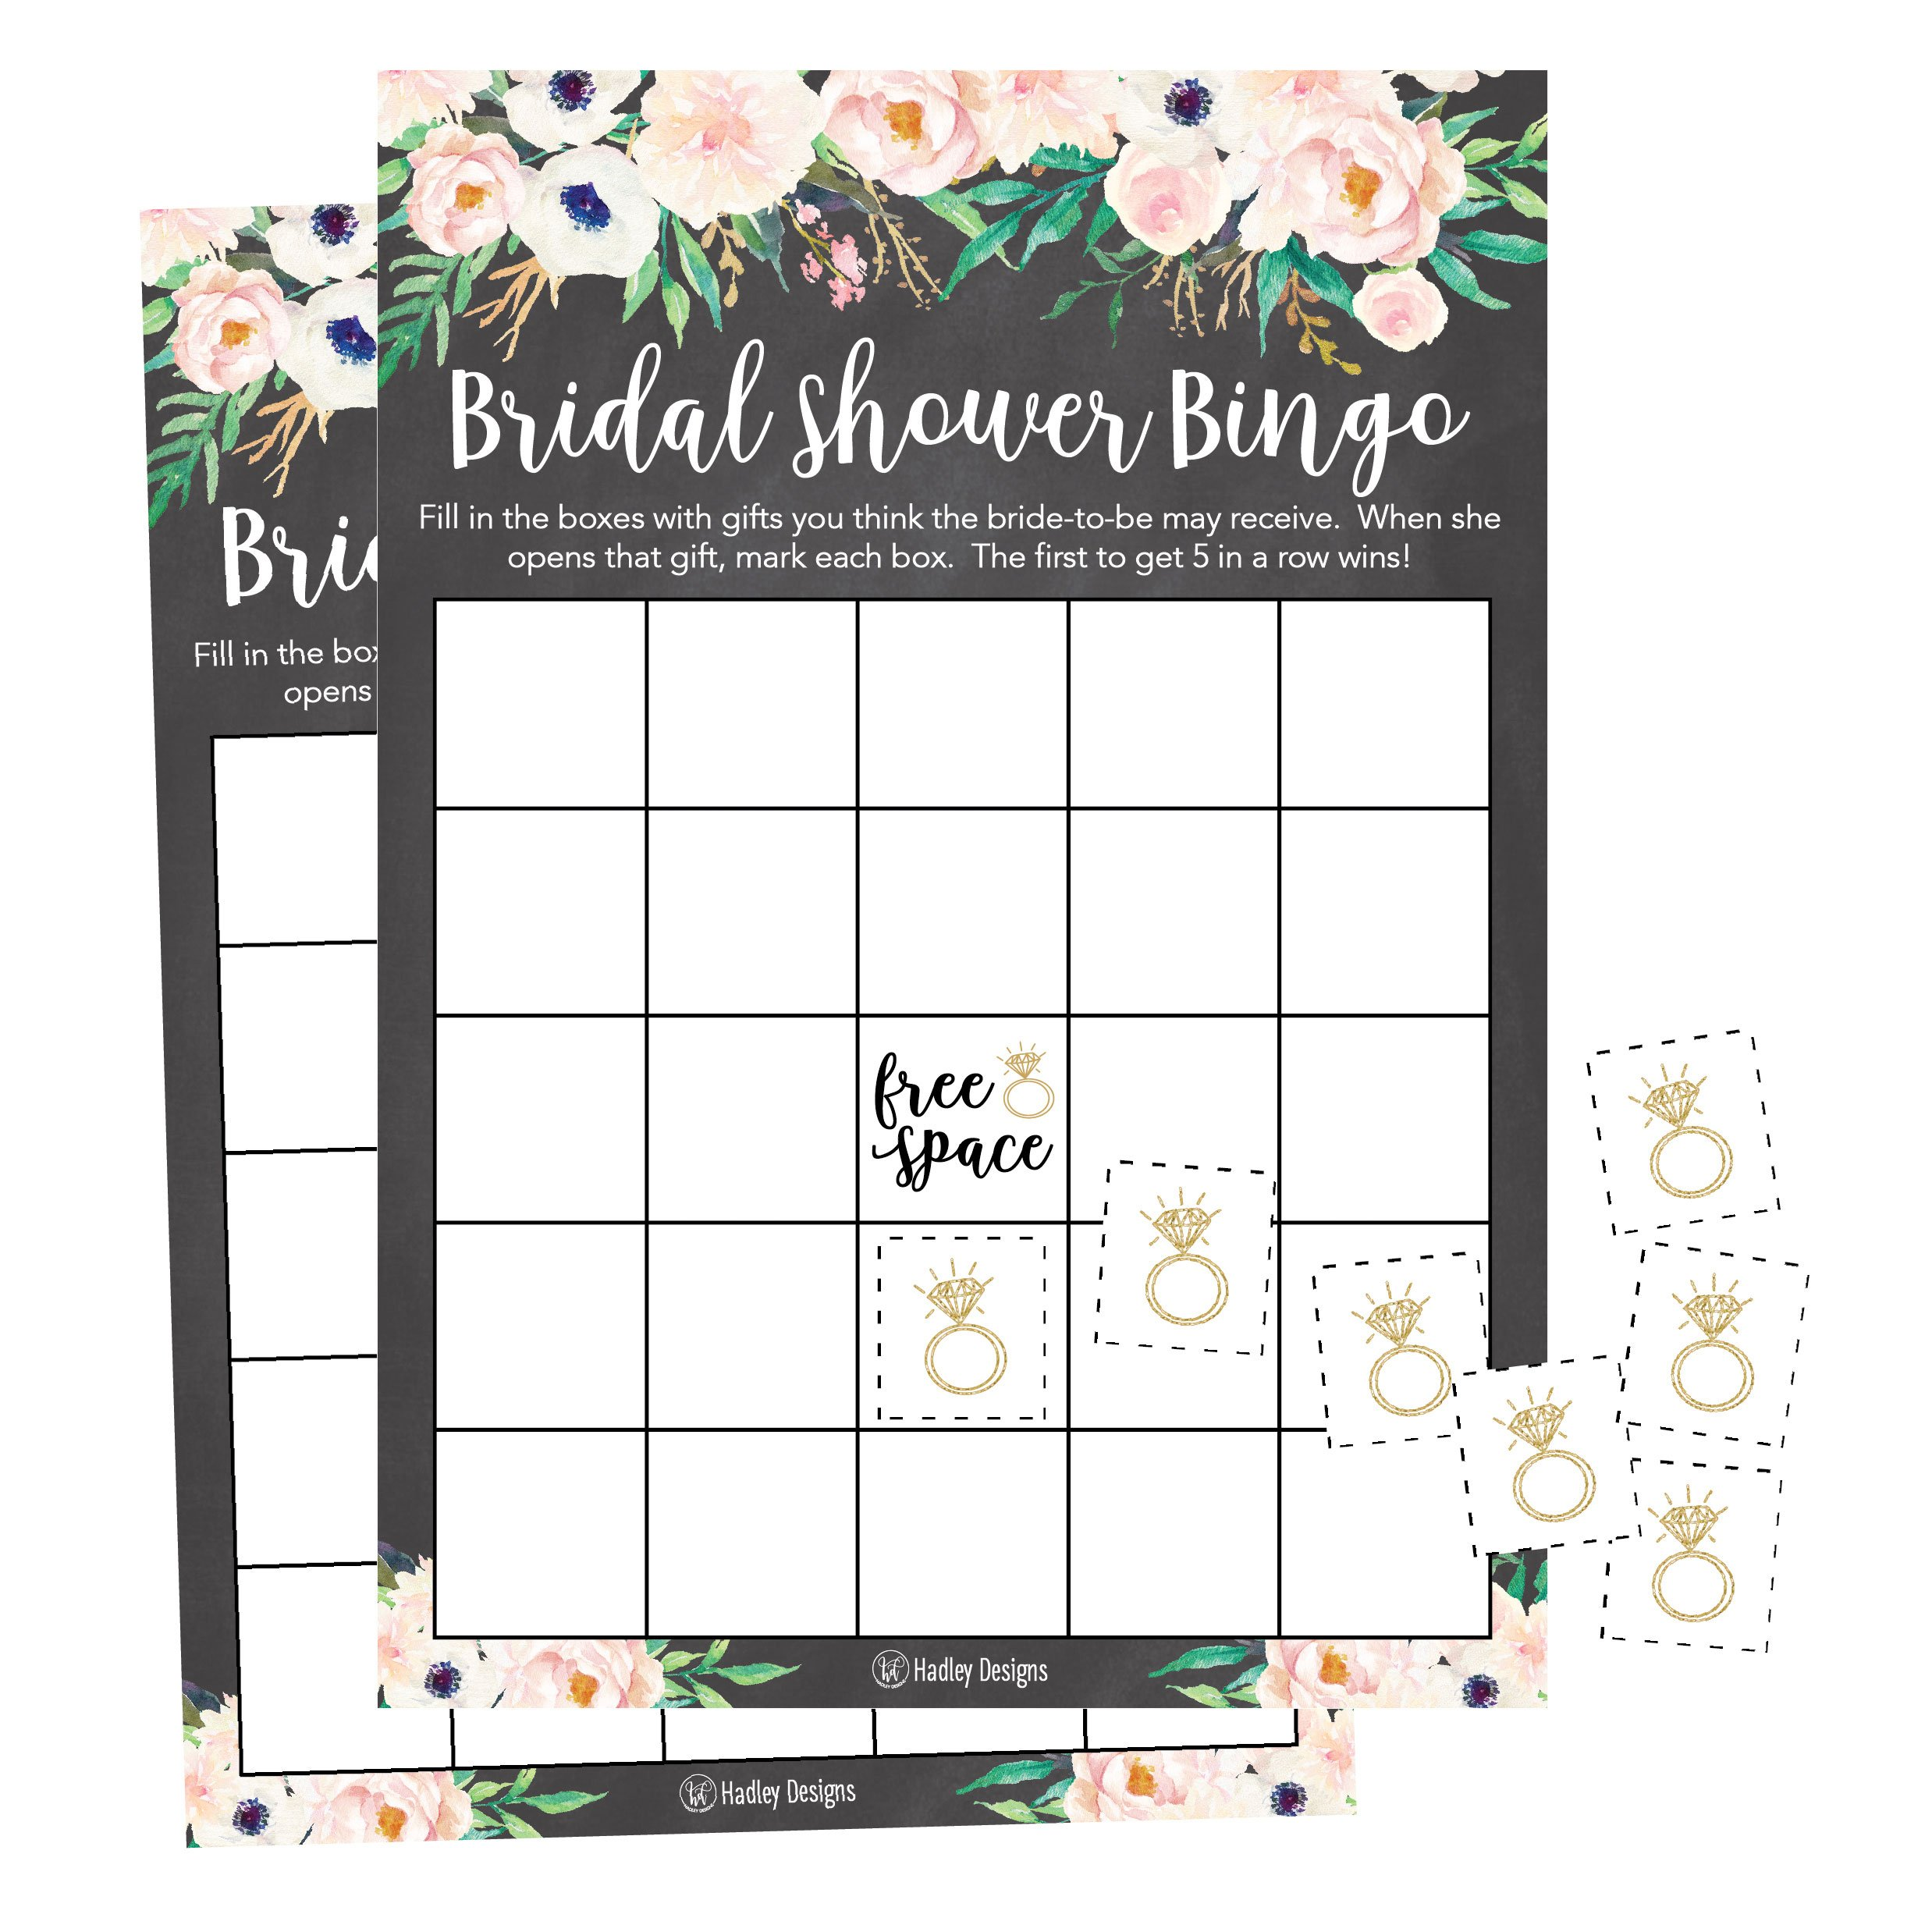 25 Rustic Vintage Pink Flower Bingo Game Cards For Bridal Wedding Shower and Bachelorette Party, Bulk Blank Squares Gift Ideas, Funny Supplies Bride and Couple PLUS 25 Wedding Ring Bingo Chip Markers by Hadley Designs